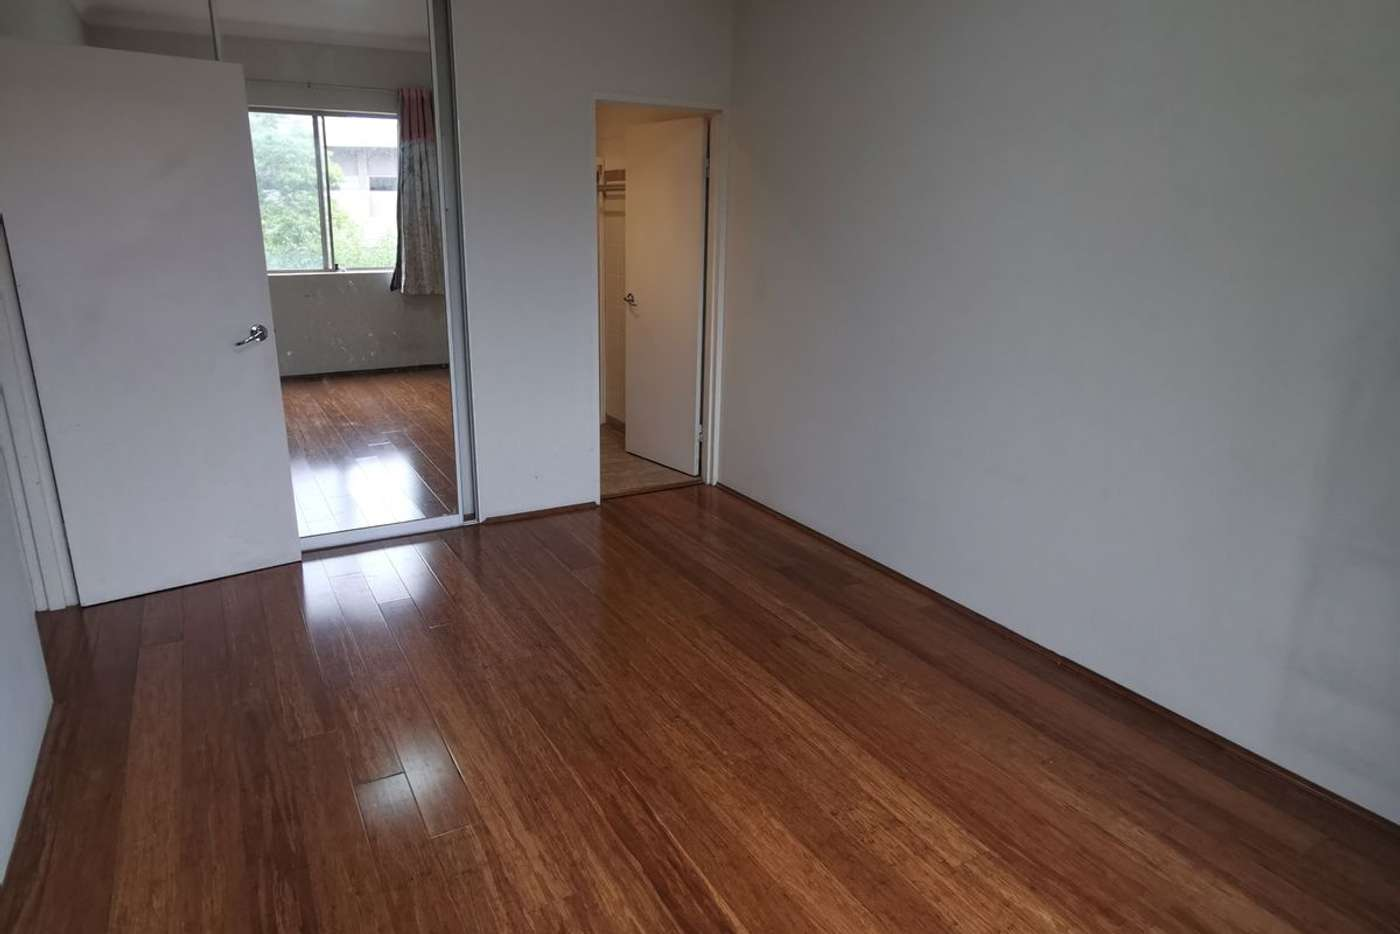 Sixth view of Homely apartment listing, 2/99-101 Anzac Avenue, West Ryde NSW 2114